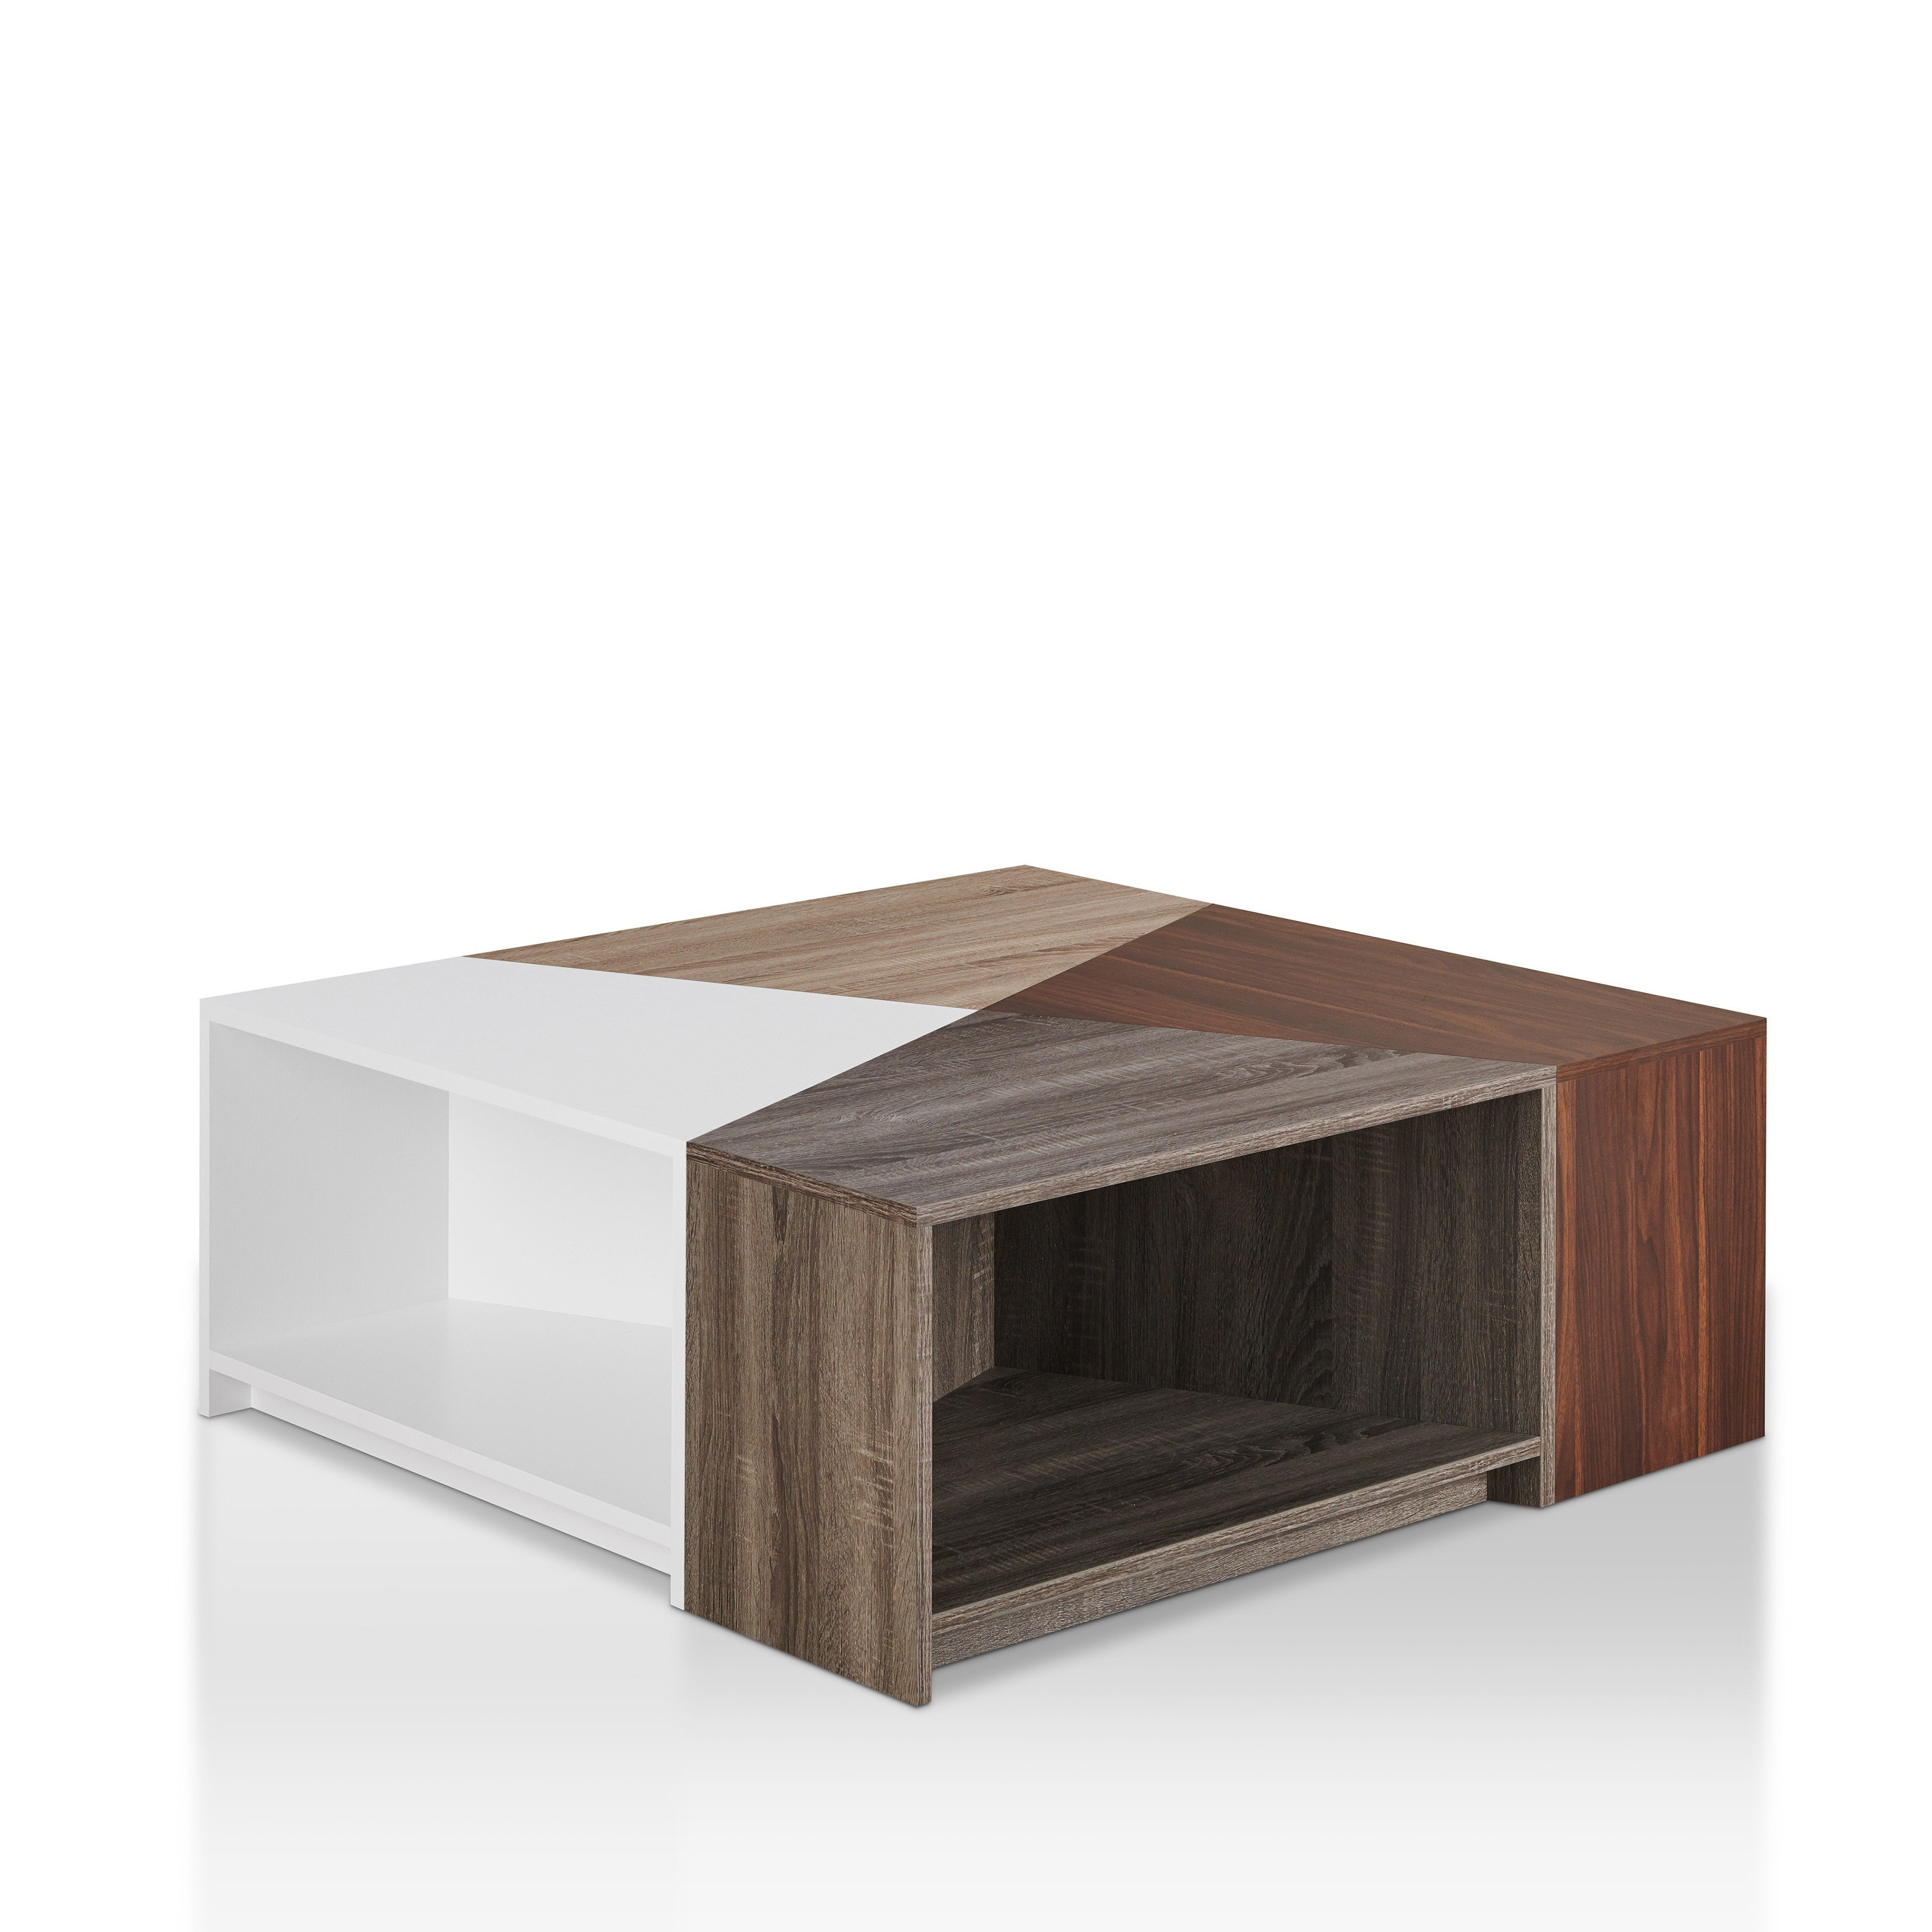 Modular Coffee Tables Within Most Recent Shop Furniture Of America Deron Contemporary Multi Colored Modular (View 18 of 20)